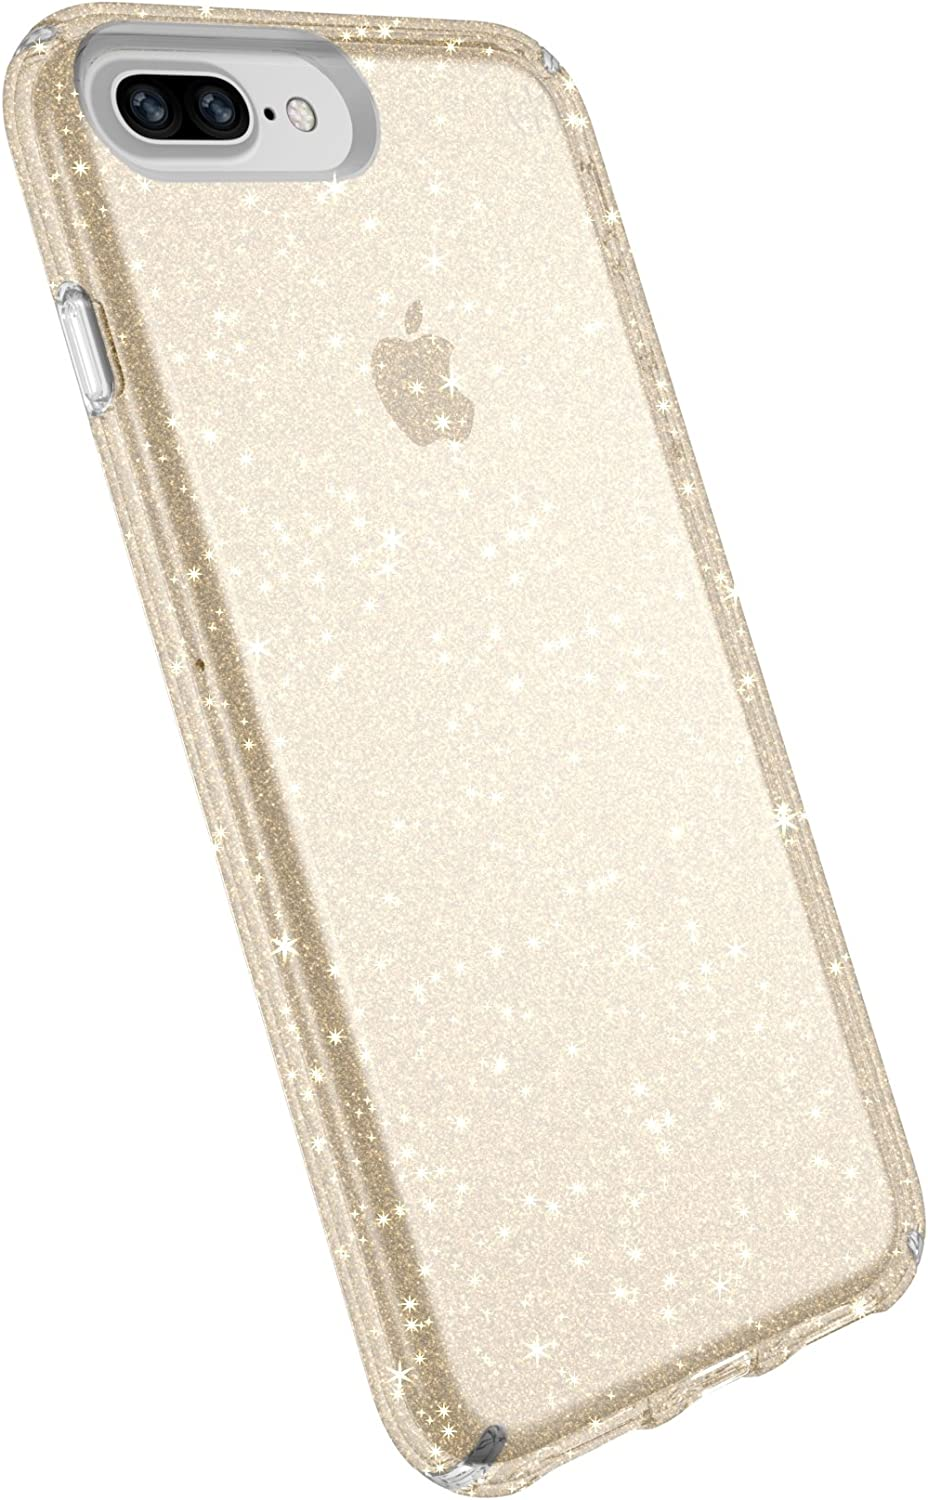 Speck Products Presidio Clear & Glitter Cell Phone Case for iPhone 8 Plus - Clear with Gold Glitter